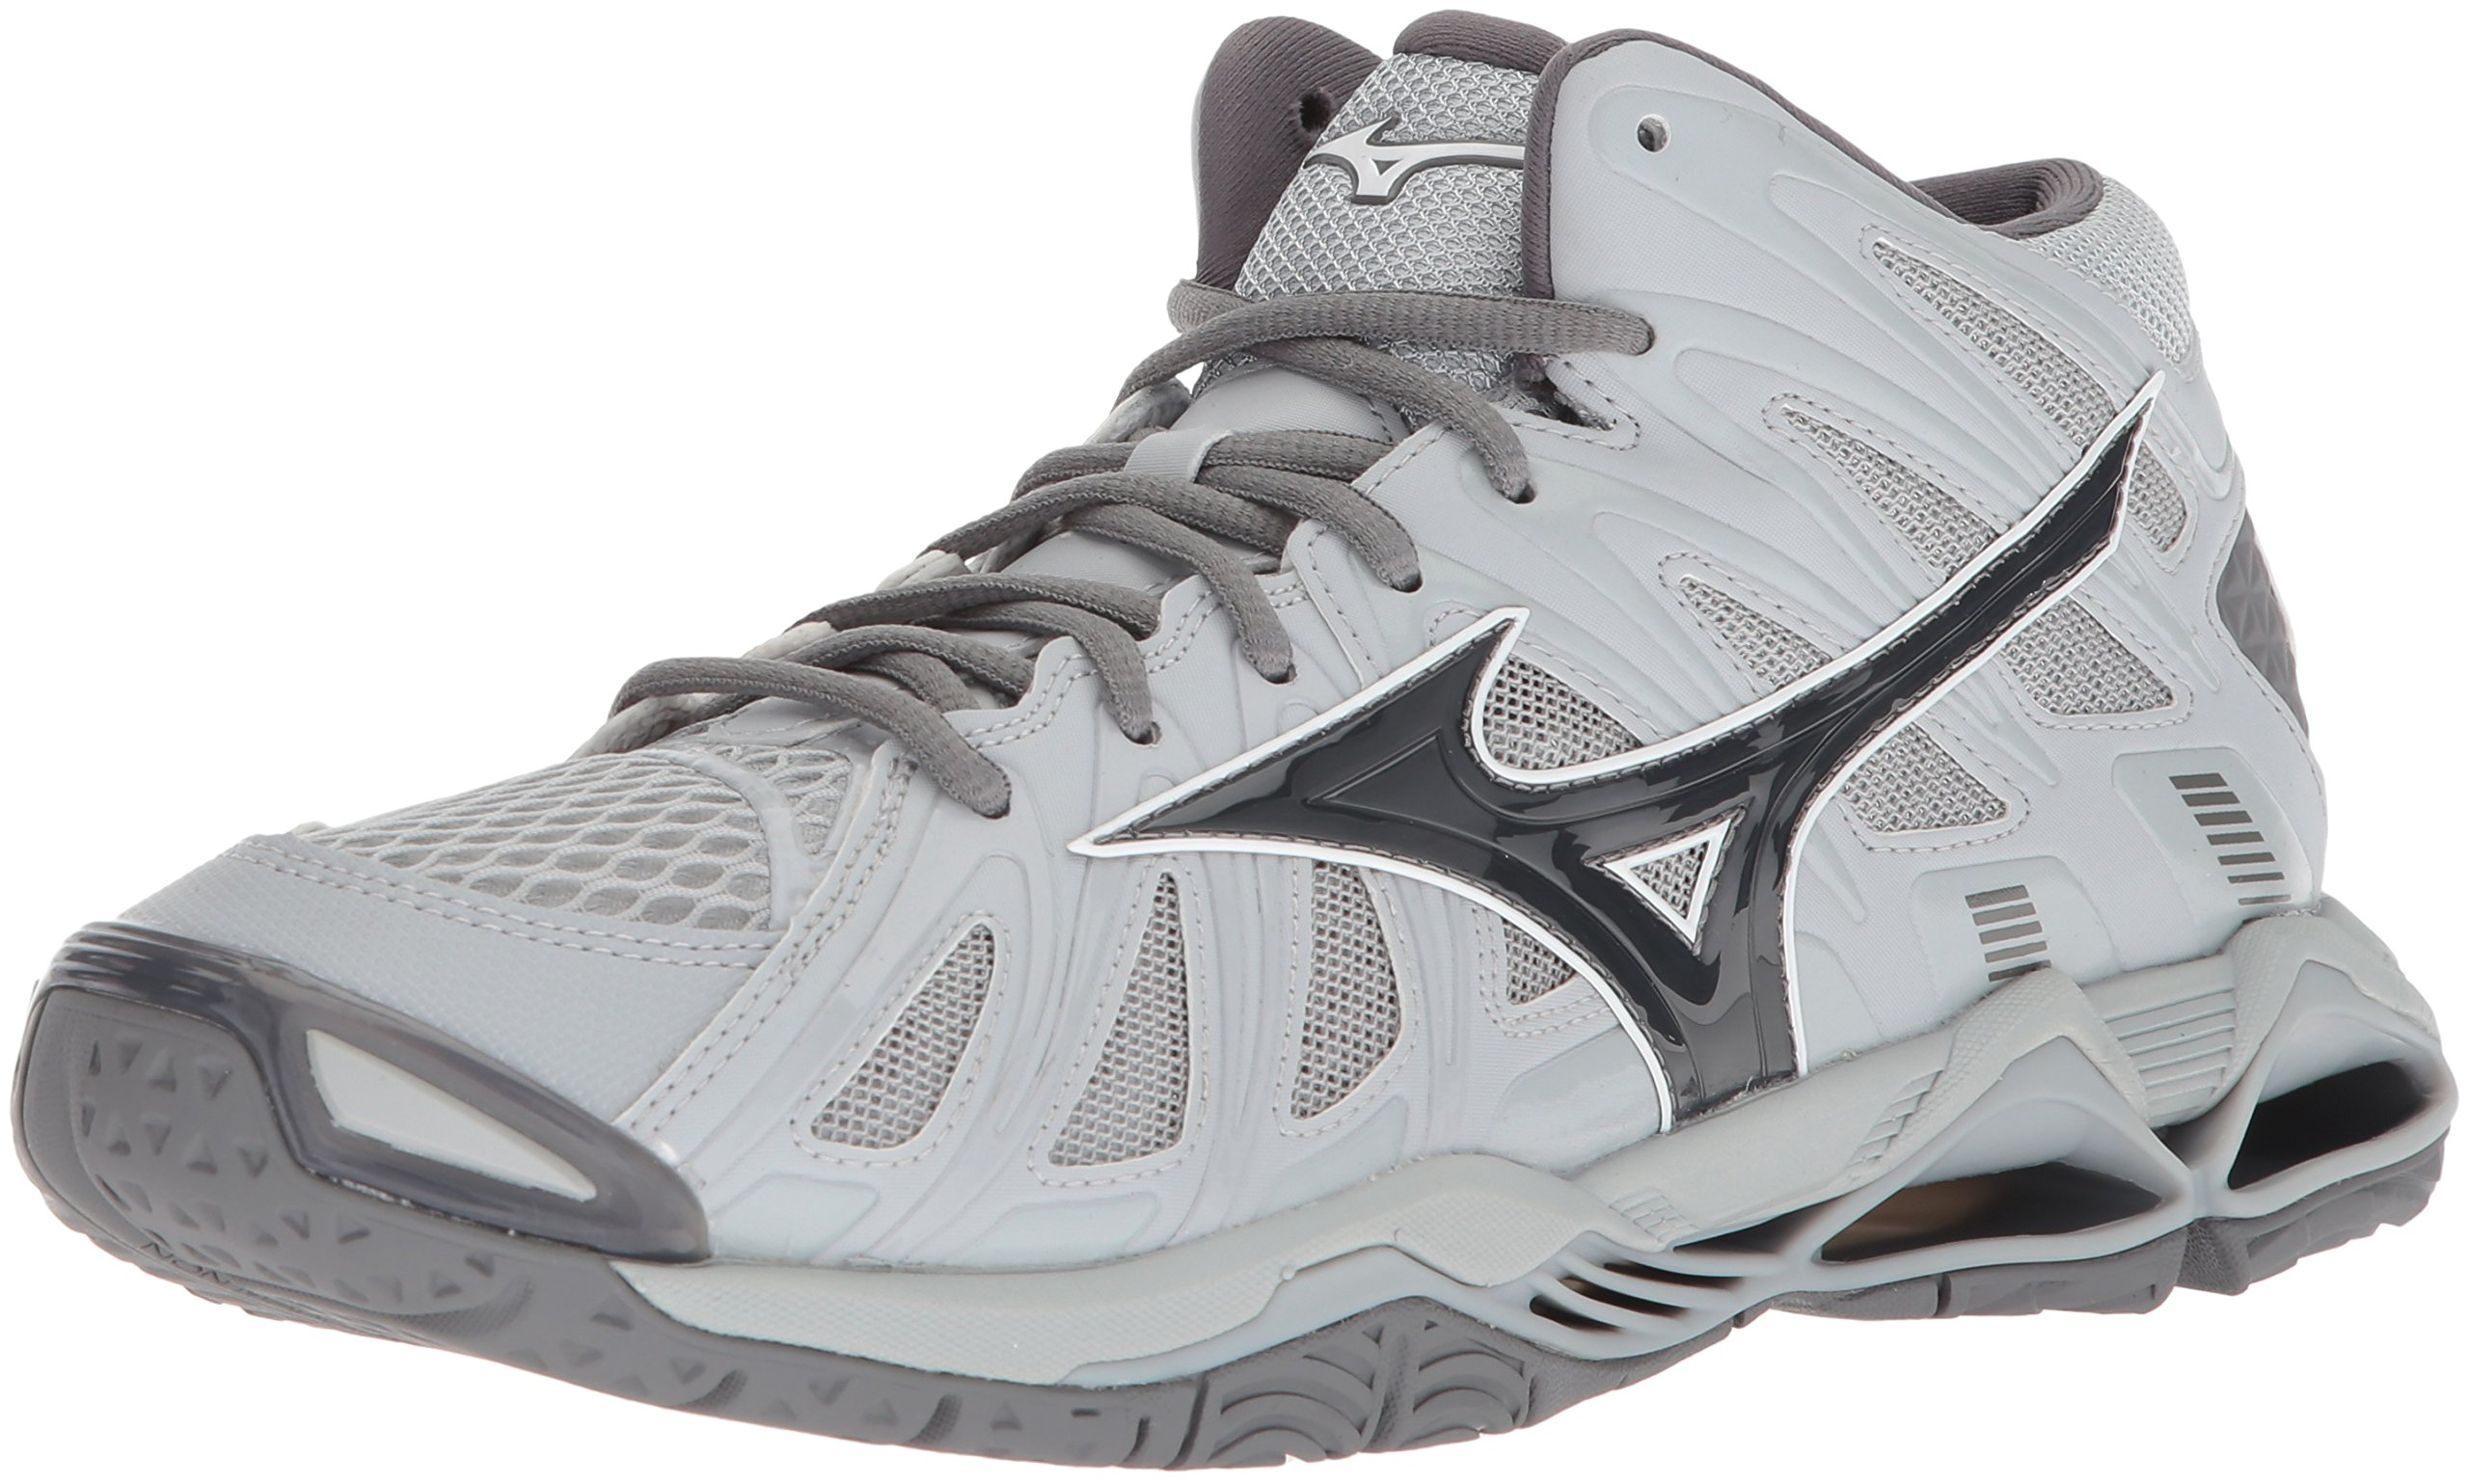 Mizuno Men's Wave Tornado X2 Mid Volleyball Shoe, Grey, Men's 12.5 D US